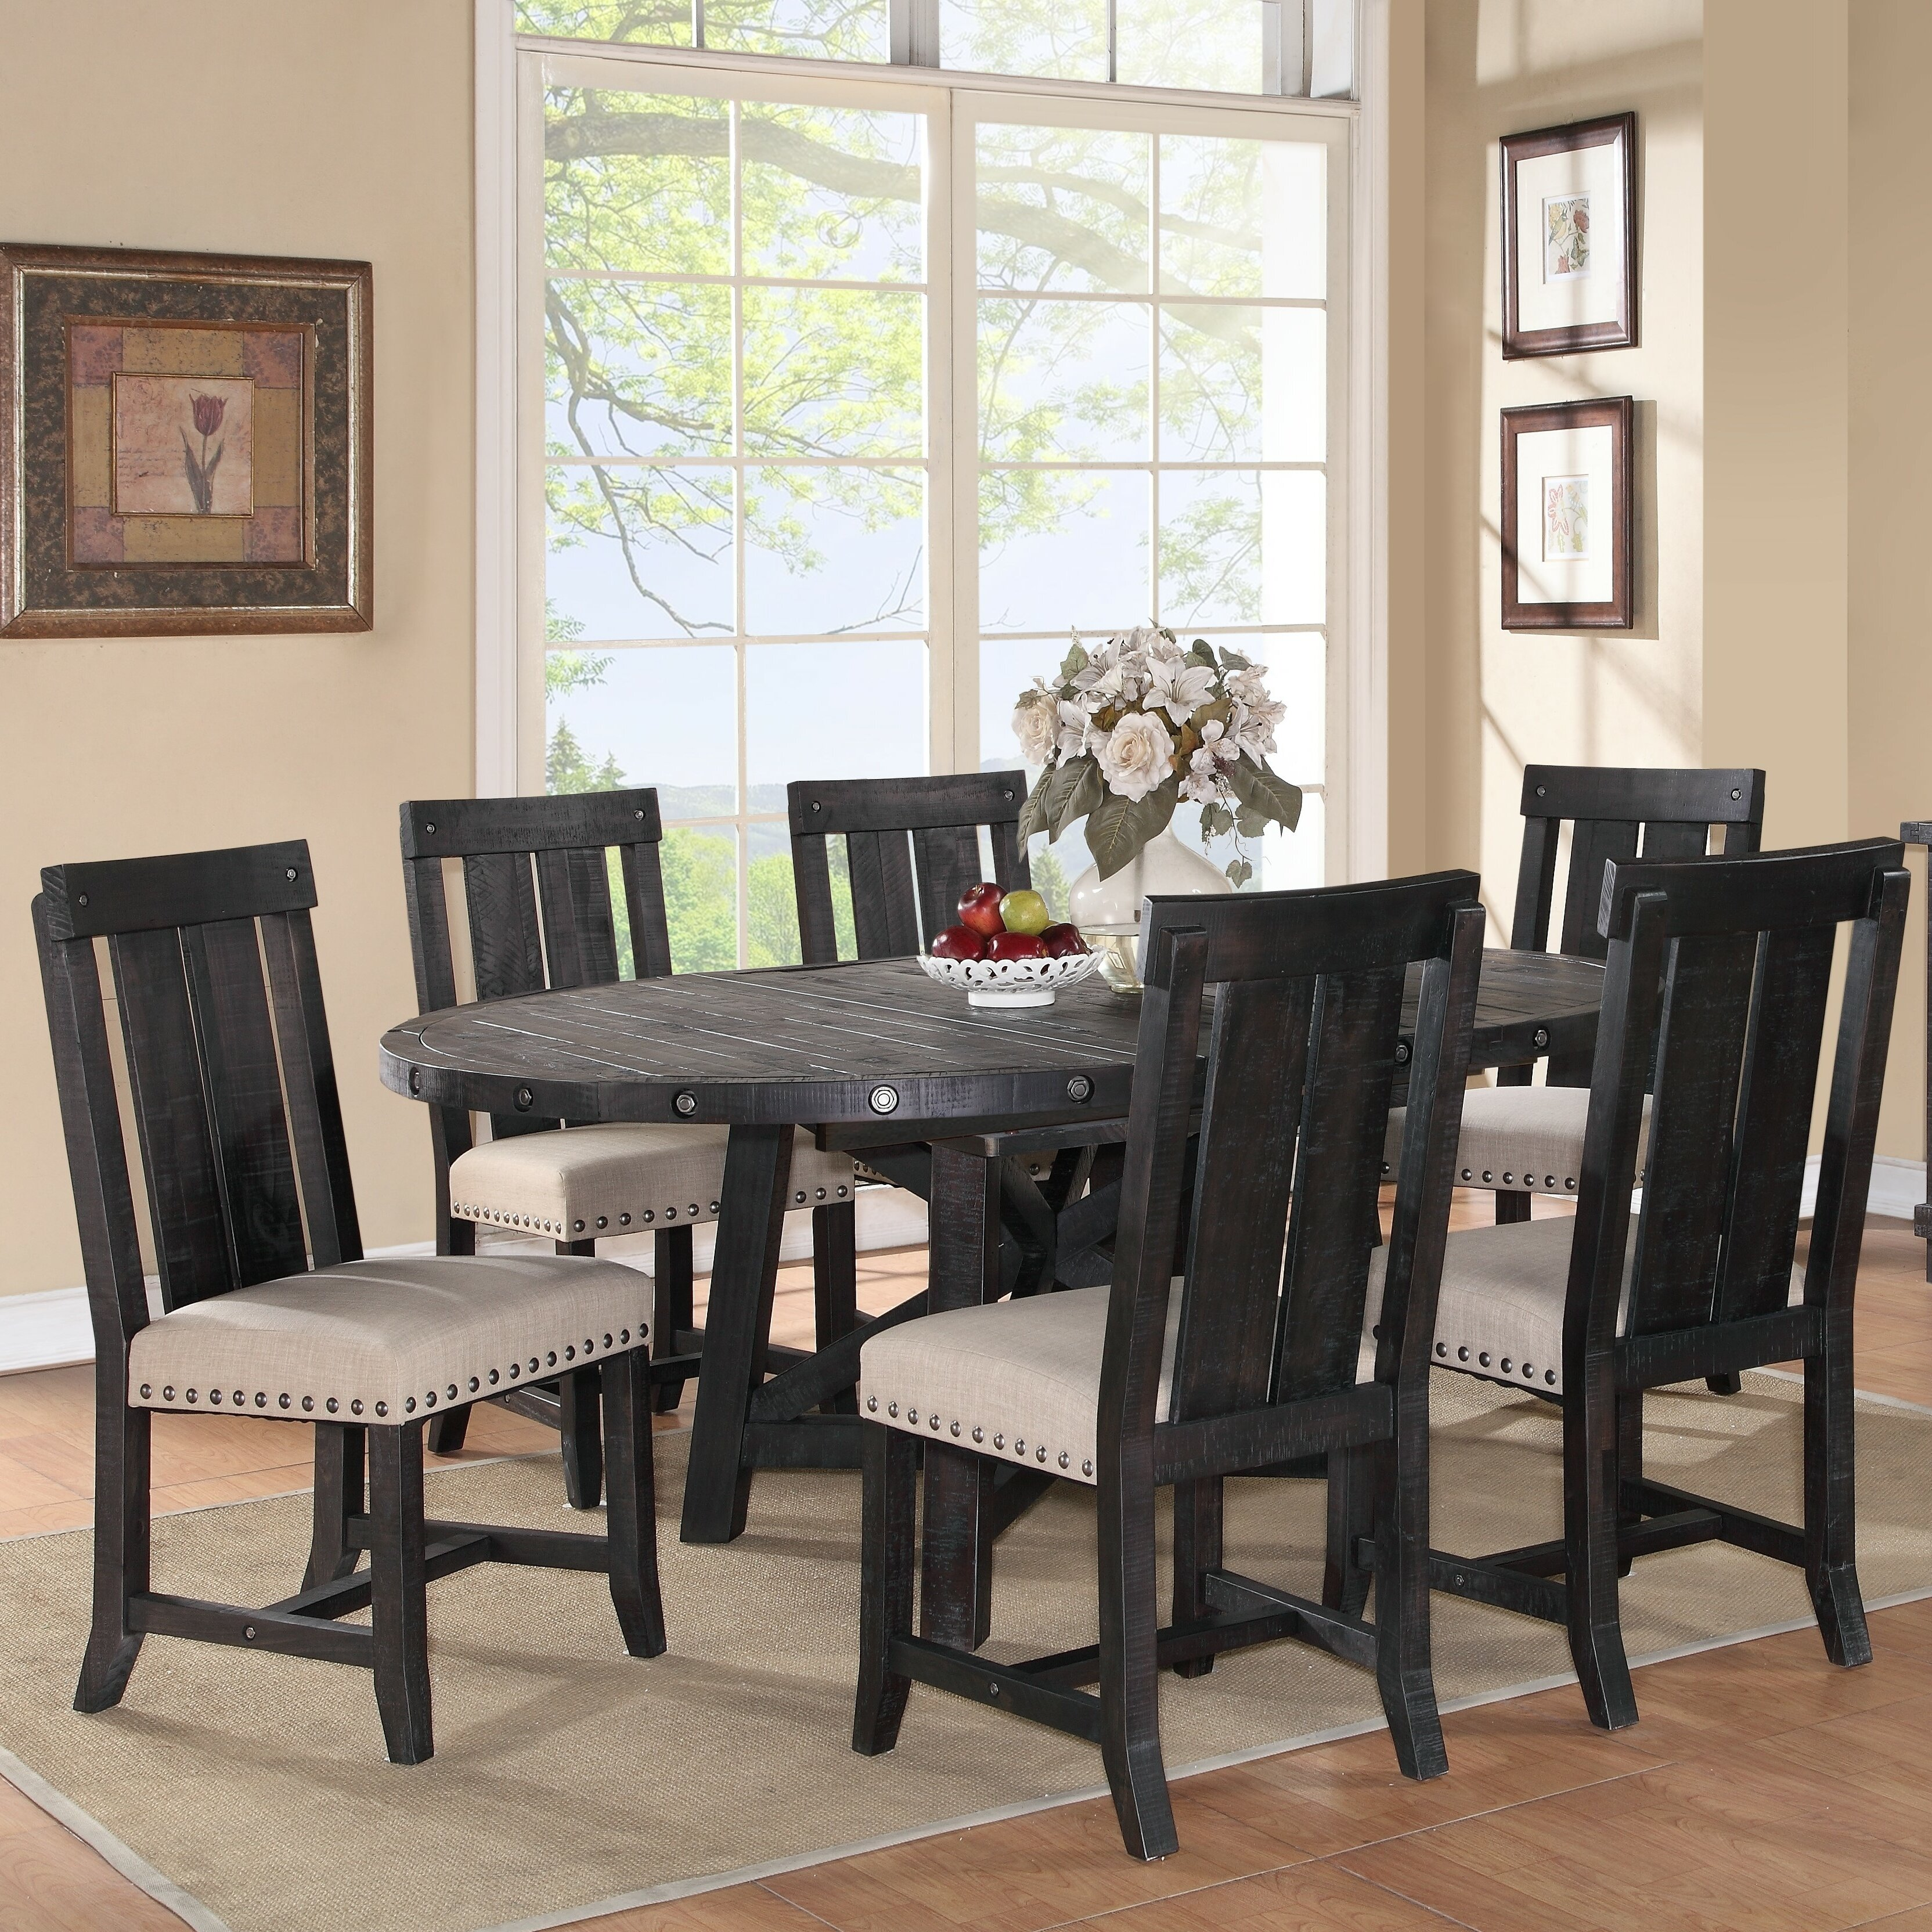 Trent austin design del rio 7 piece dining set reviews - Dining room sets austin tx ...